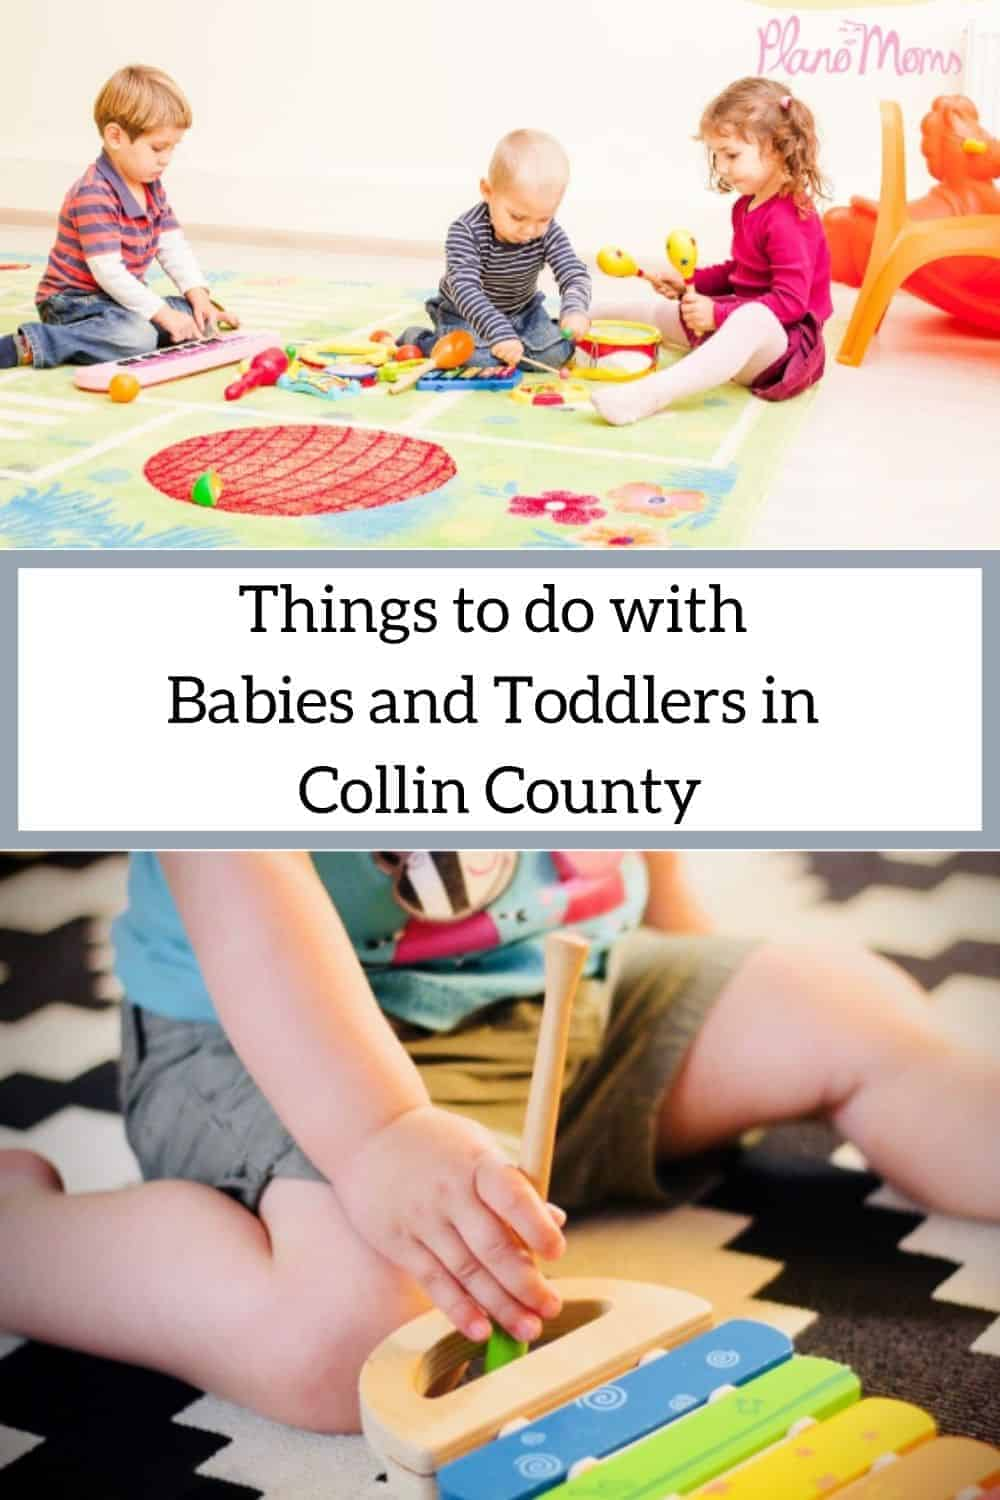 Things to do with Babies and Toddlers